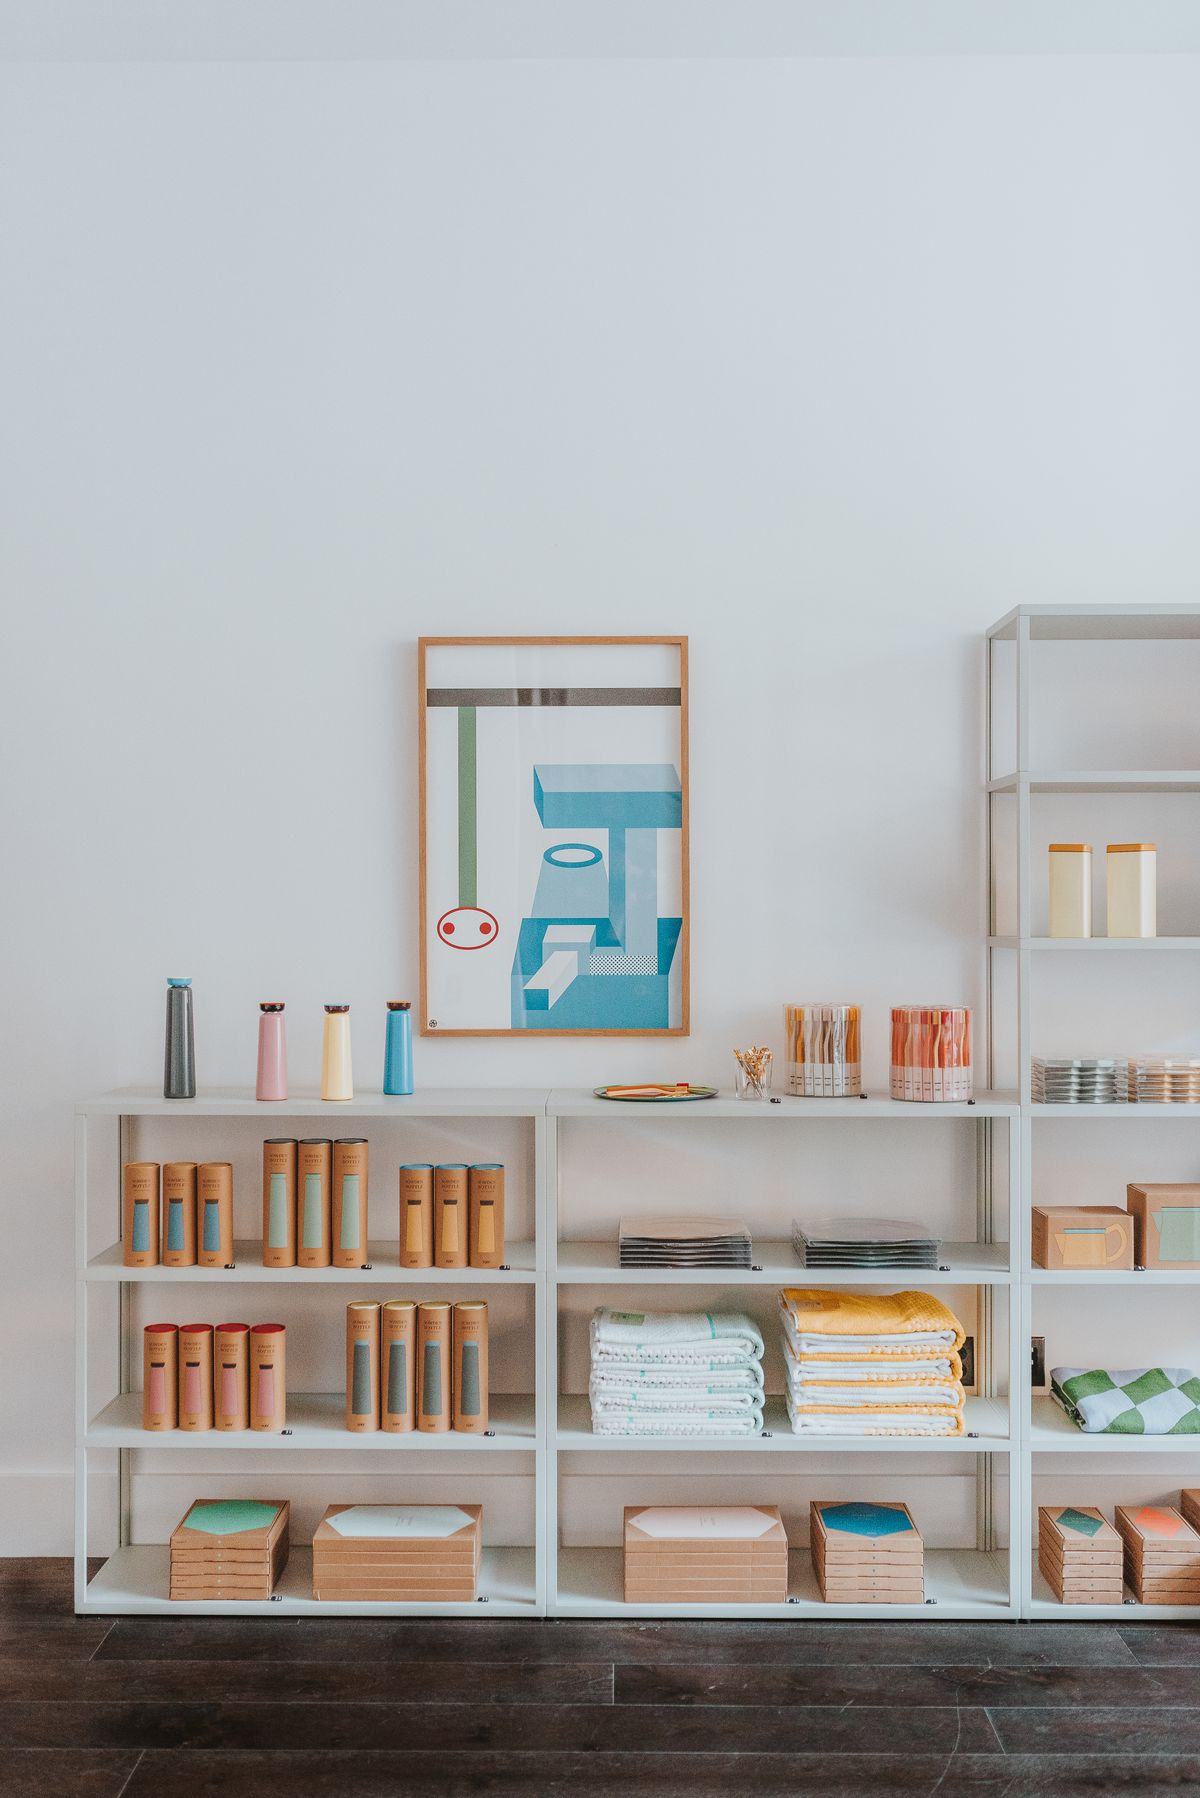 White metal shelves with colorful water bottles, containers, and towels. There is a geometric print hanging on the wall in a wooden frame.